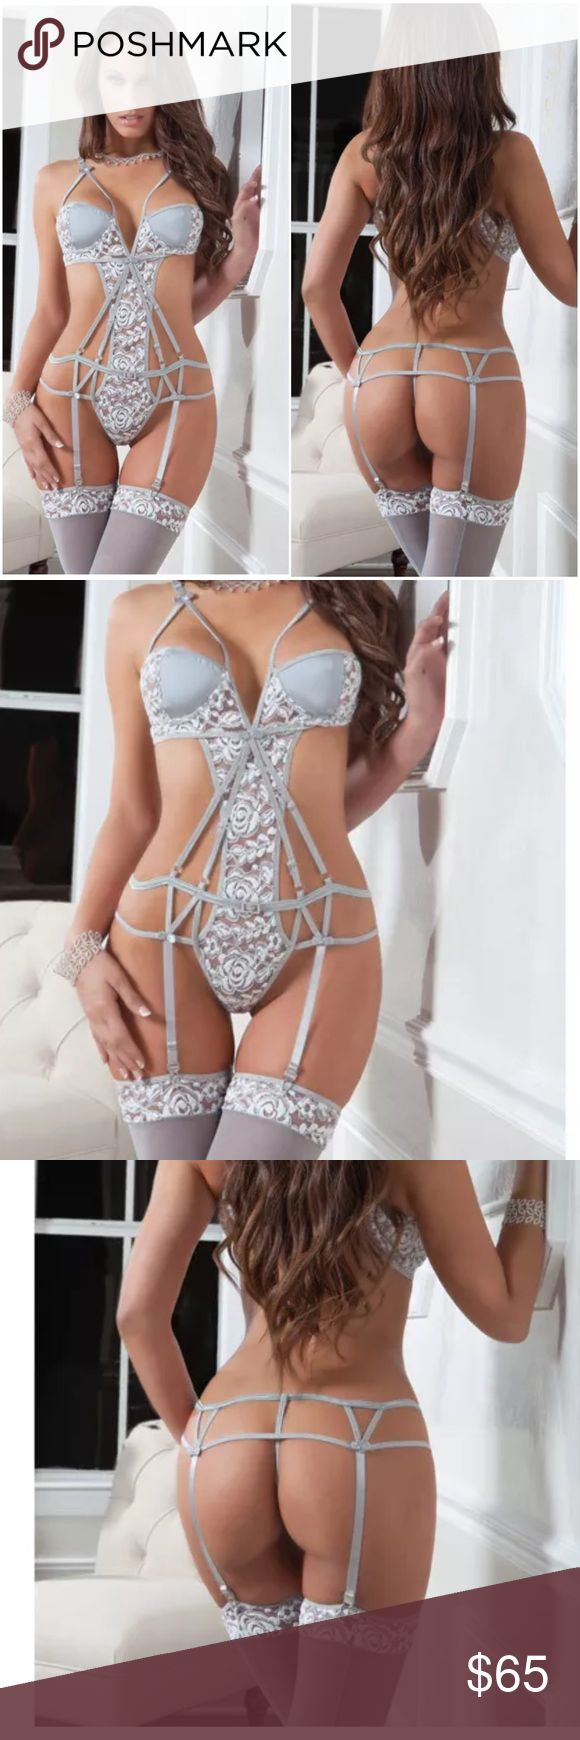 ✨NEW✨Chantilly Lace Caged Lingerie Set + Stockings ✨NEW✨Chantilly Lace Caged Lingerie Set + Stockings✨ ✨Gorgeous Antique Gray Color✨One Size Fits Most (90-150 lbs and 30-36 A/B/C cup)✨Waist 24-29; Hip 34-39 ✨Teddy + garters and matching thigh high stockings included!✨ Intimates & Sleepwear